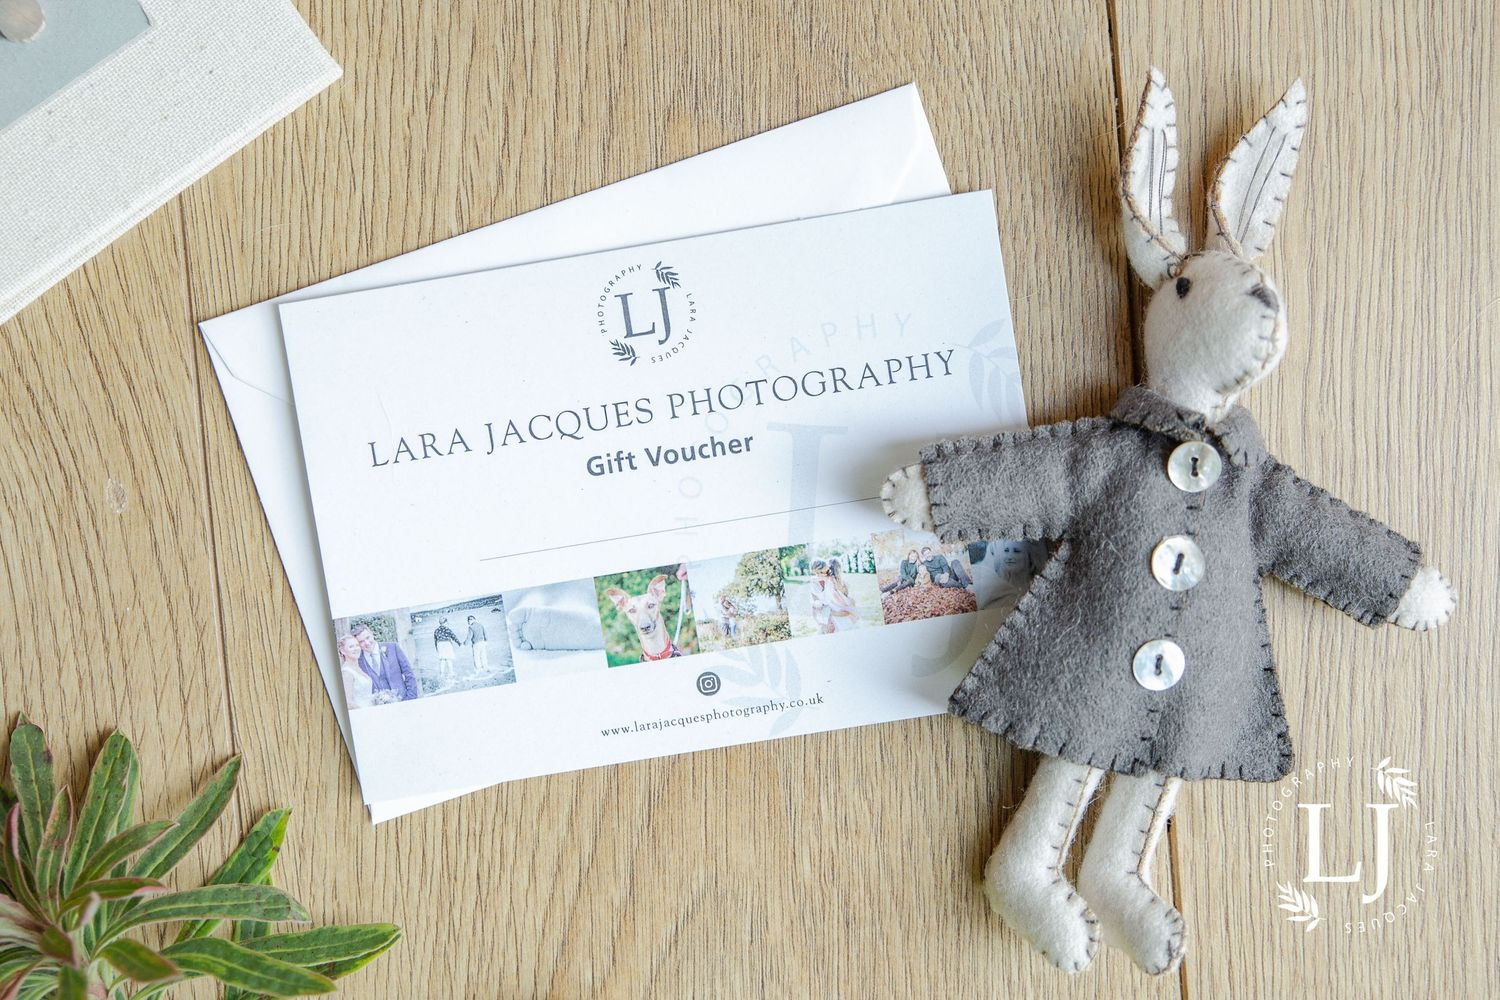 newborn photography, baby photography, oxfordshire photographer, gift voucher